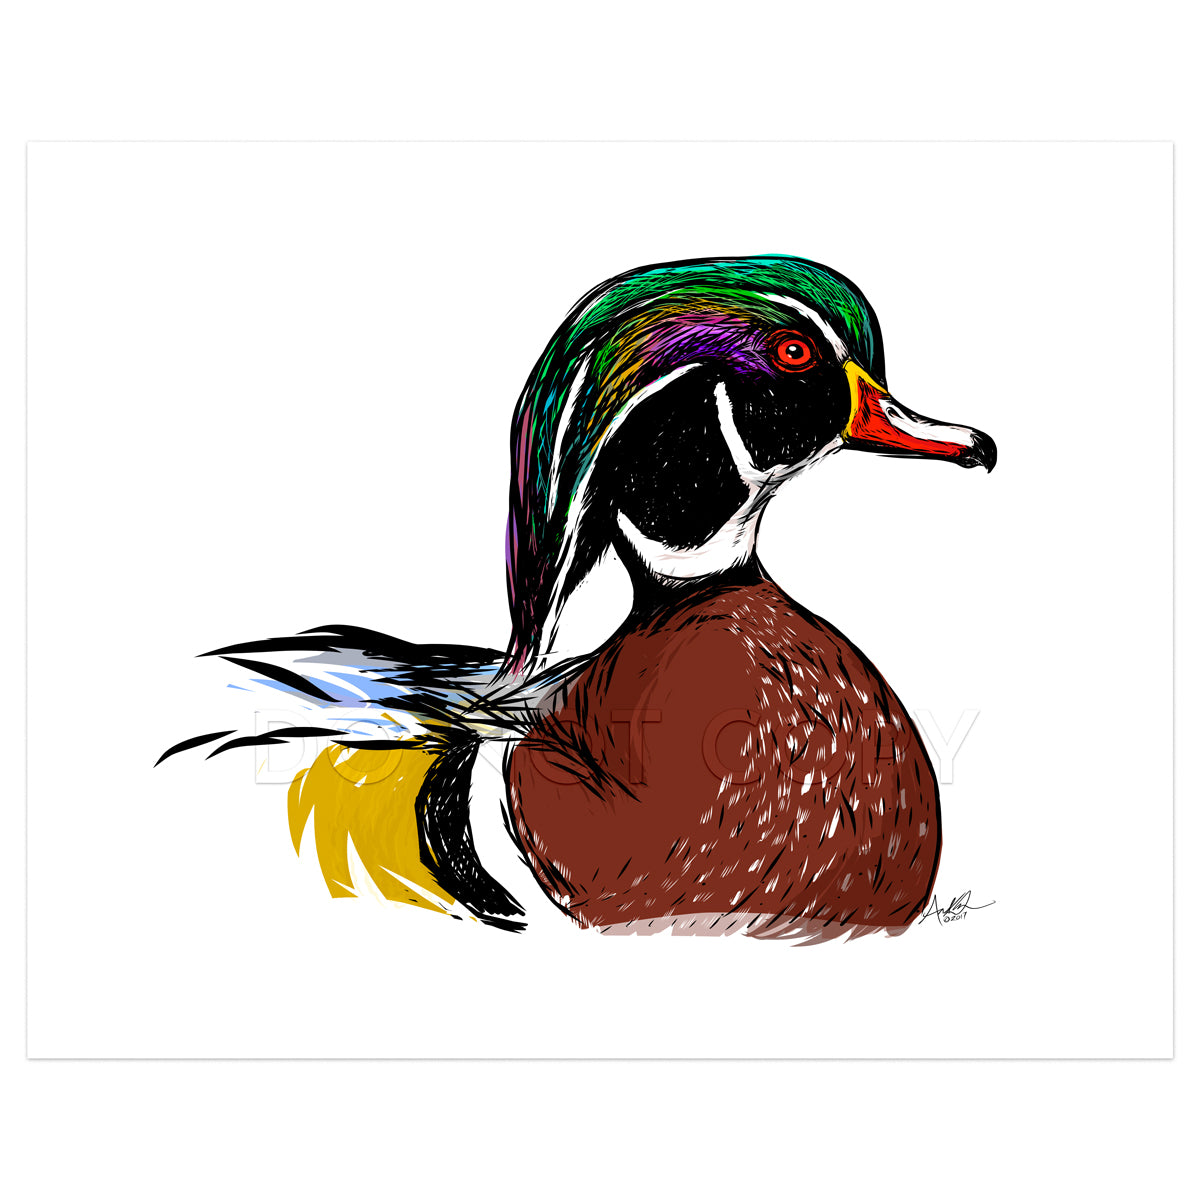 "Wood Duck Drake on Water, 8x10"" Print"